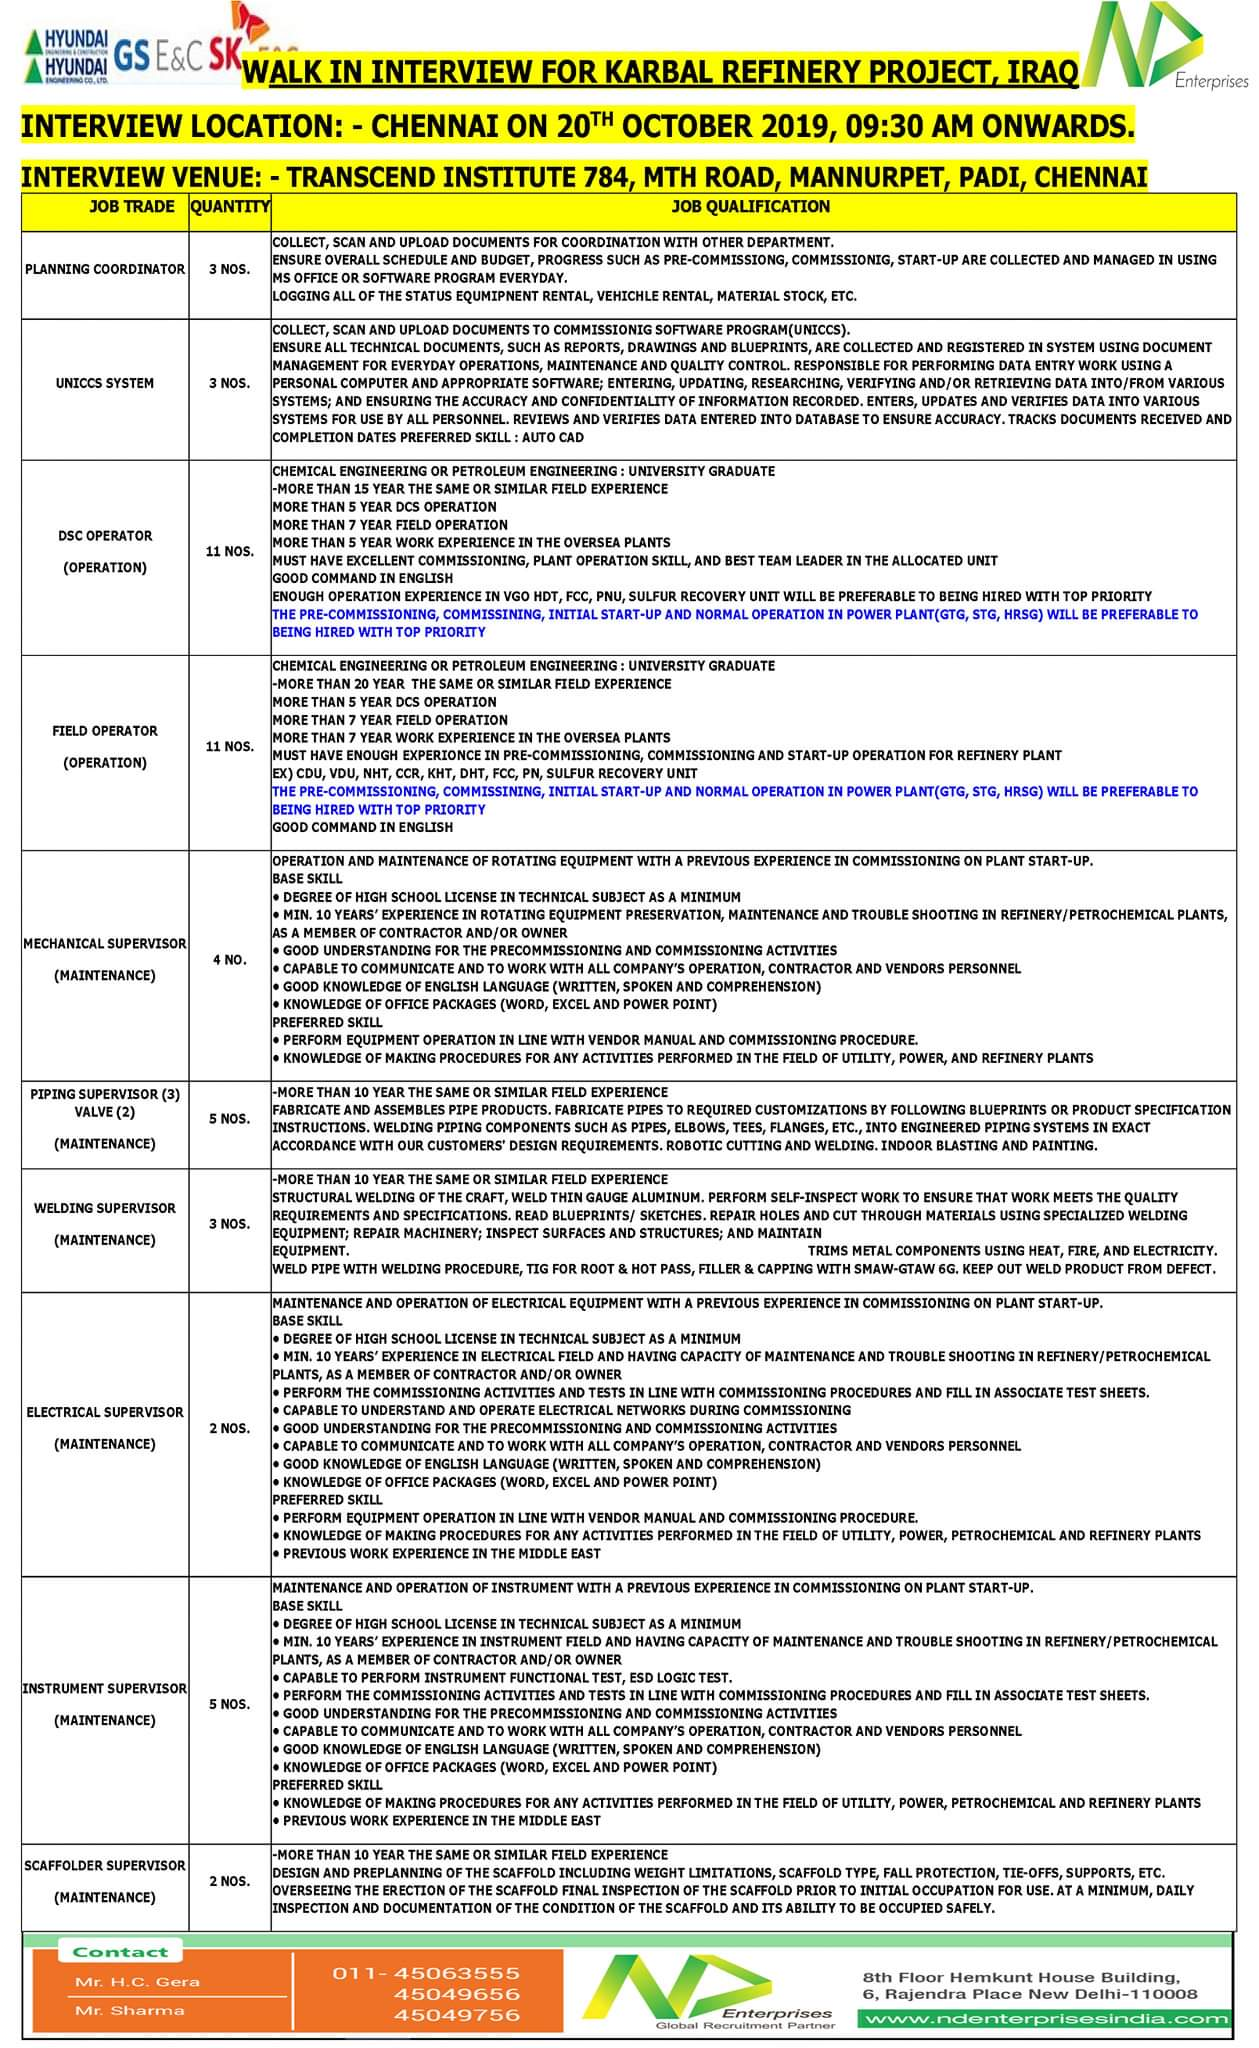 JOB OPPORTUNITIES IN KARBAL REFINARY PROJECT,IRAQ